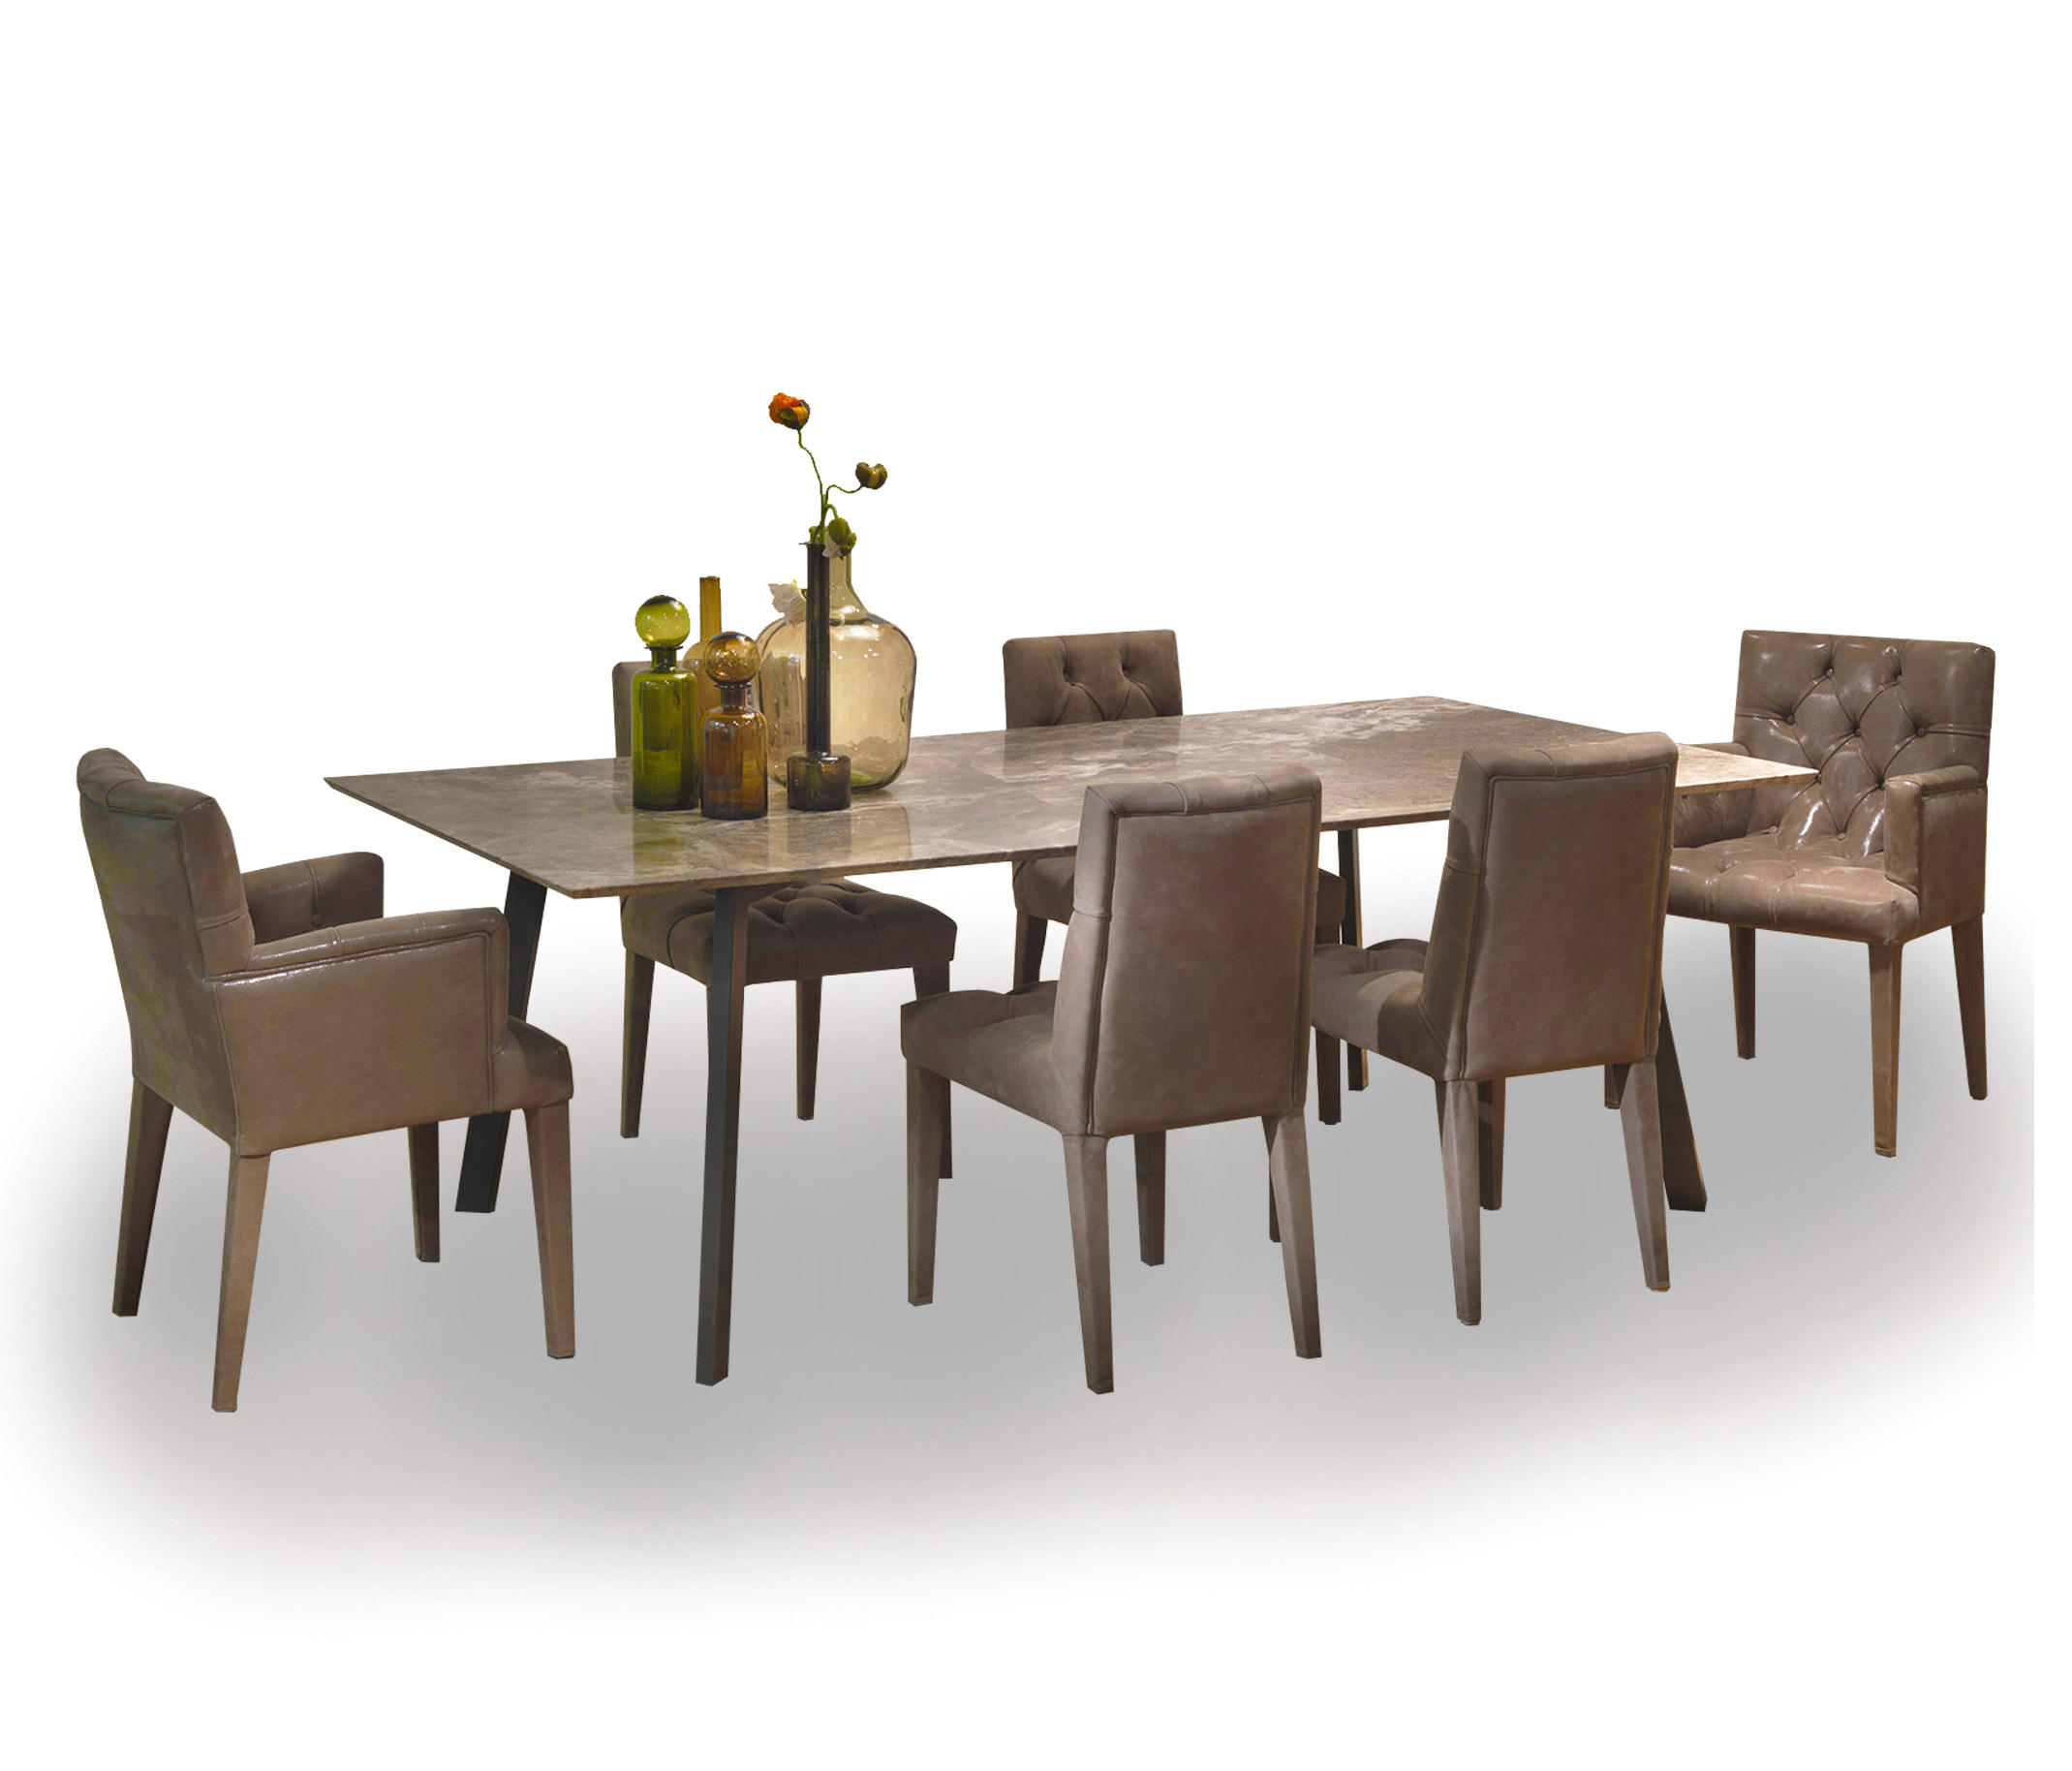 Self Dining Table By Marelli | Dining Tables